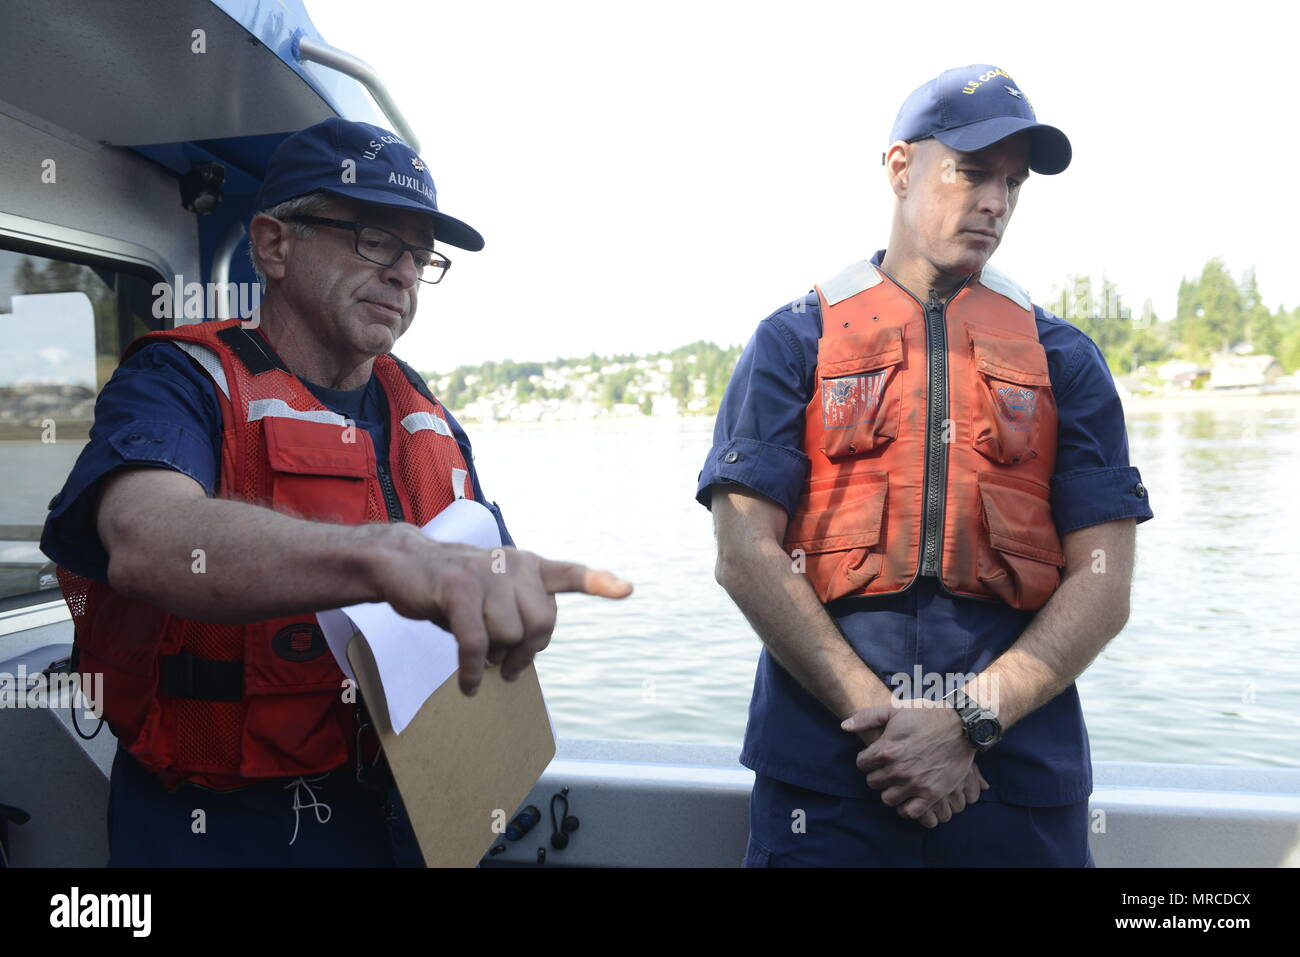 Capt. Sean Cross (right), chief of response, Coast Guard 13th District, listens as Kent Brown, a coxwain with Coast Guard Auxiliary District 13, Flotilla 1-2, conducts a safety brief prior to departing from the Naval Fuel Deport in Manchester, Wash., June 6, 2017.    Officials from the Coast Guard and Army Corp of Engineers observed a joint spill exercise off a Blake Island from Brown's vessel.     U.S. Coast Guard photo by Petty Officer 3rd Class Amanda Norcross. - Stock Image